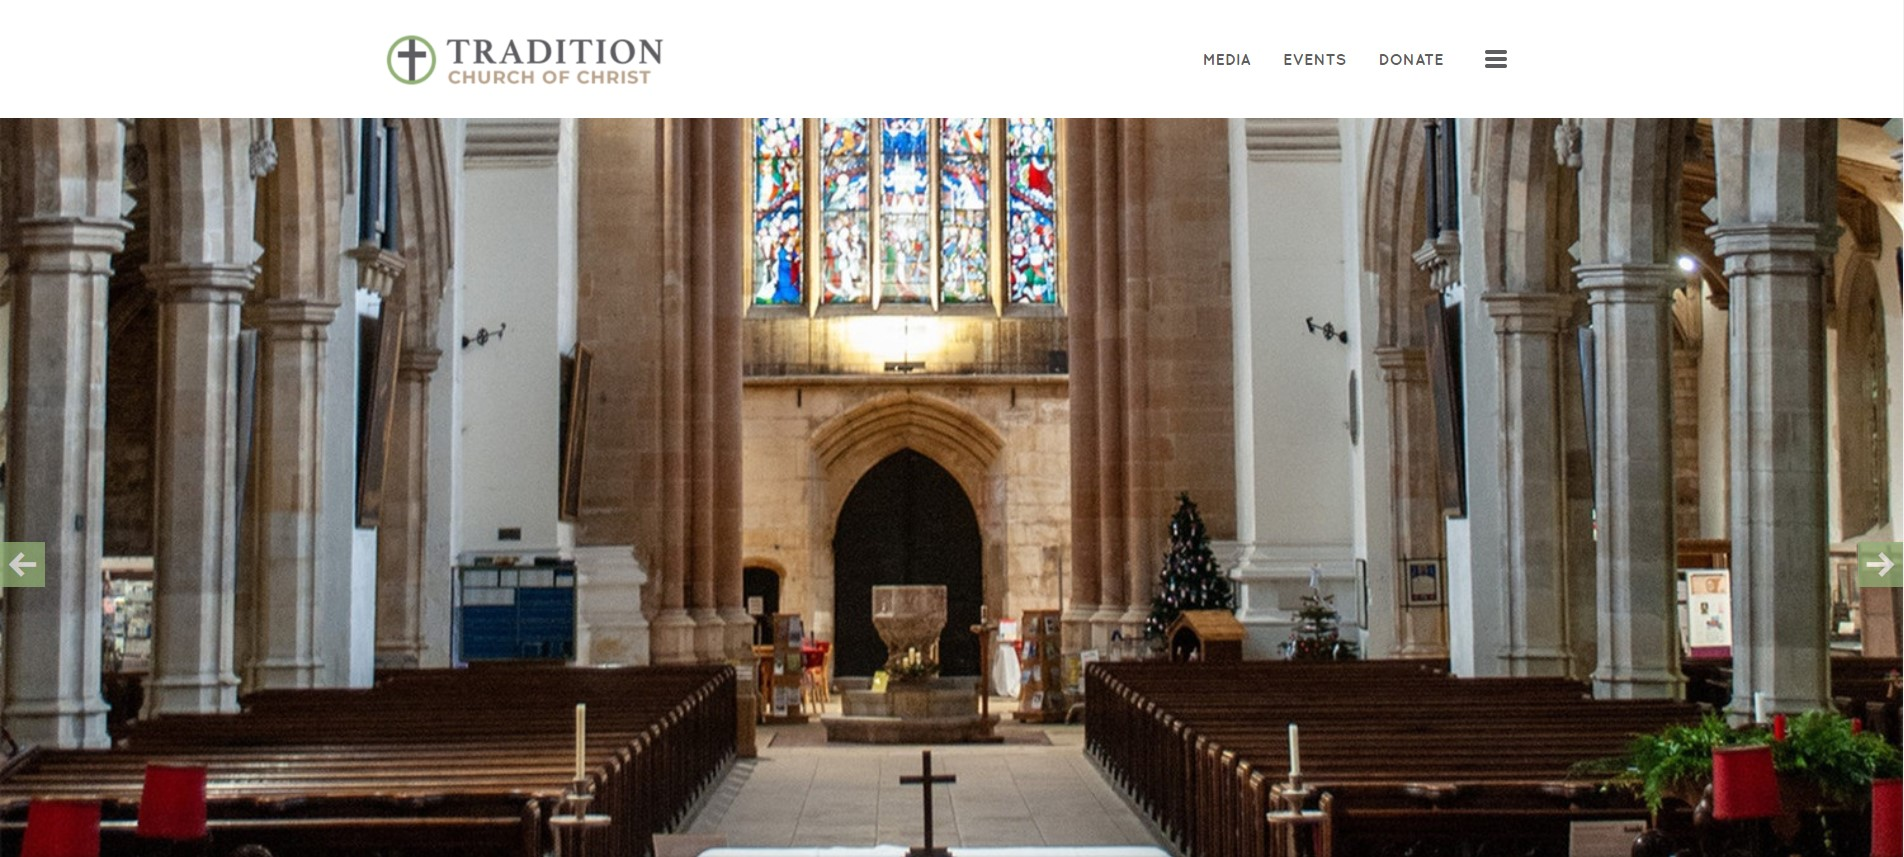 Introducing the new church website theme from CloverSites: Tradition!